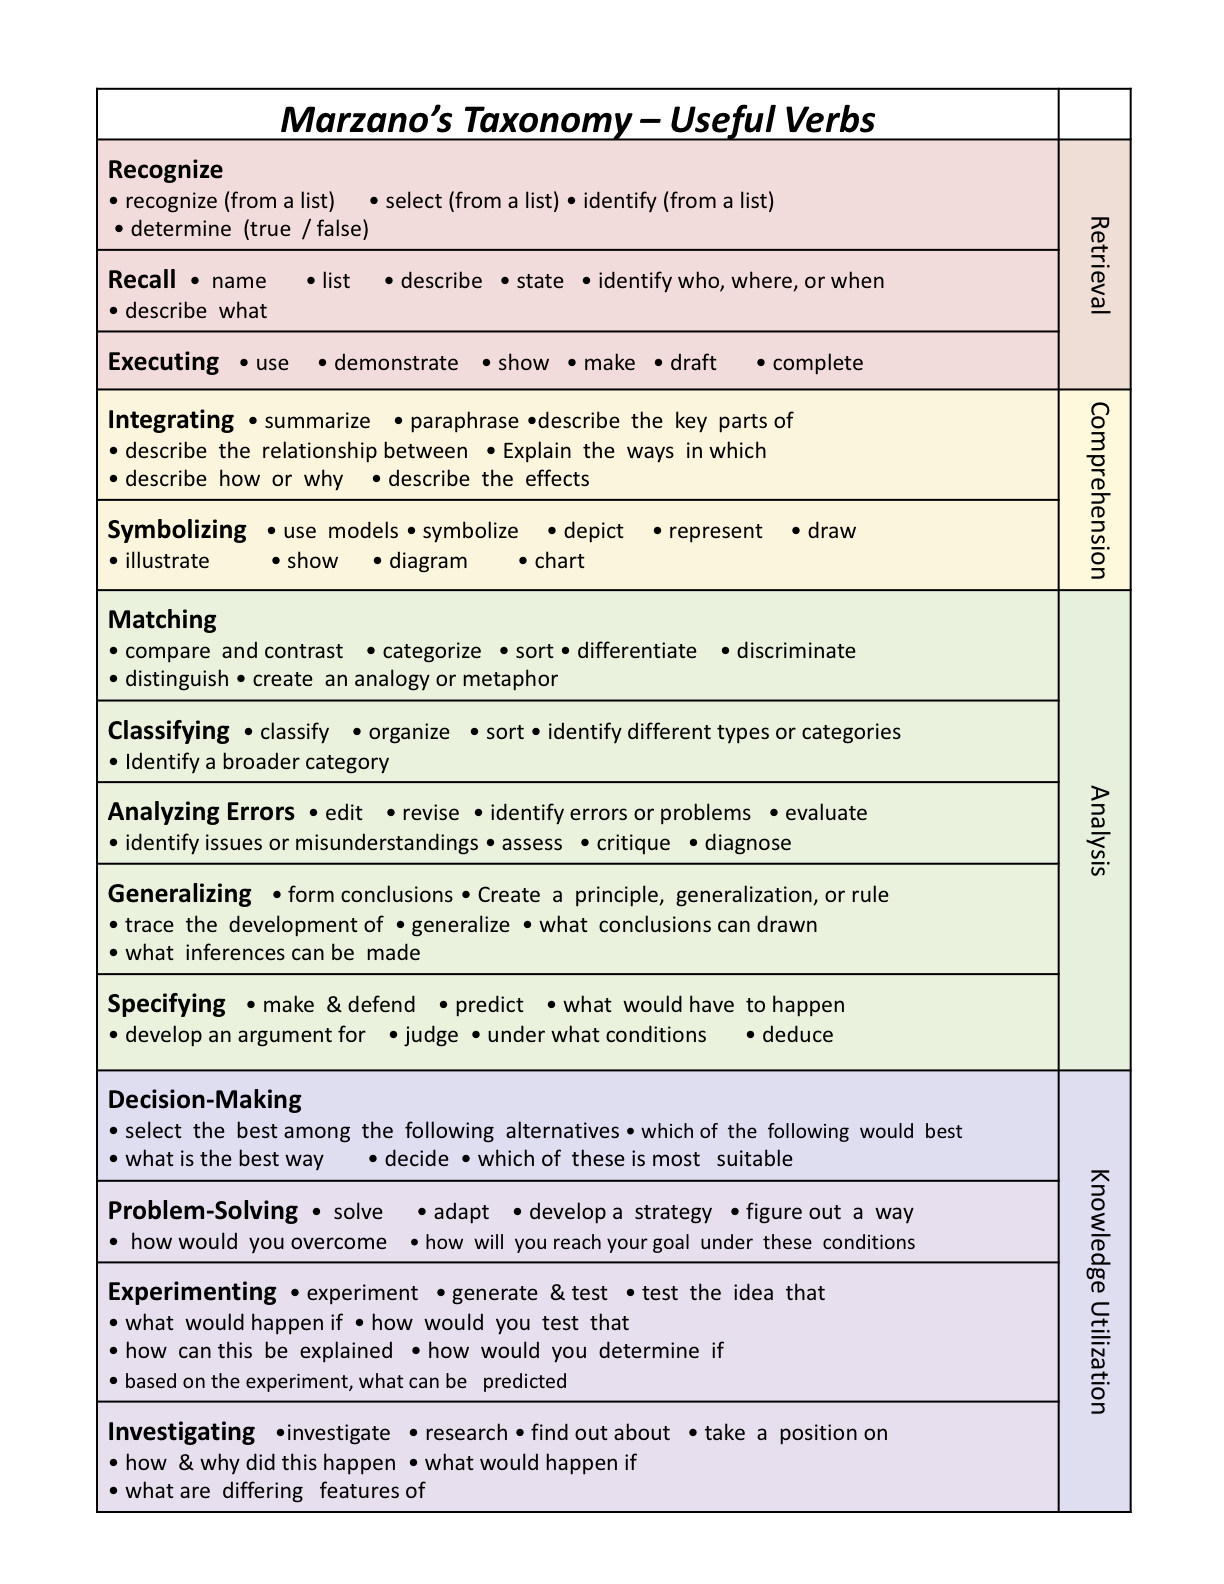 Marzano Taxonomy and Useful Verbs | 2 Planning | Pinterest ...